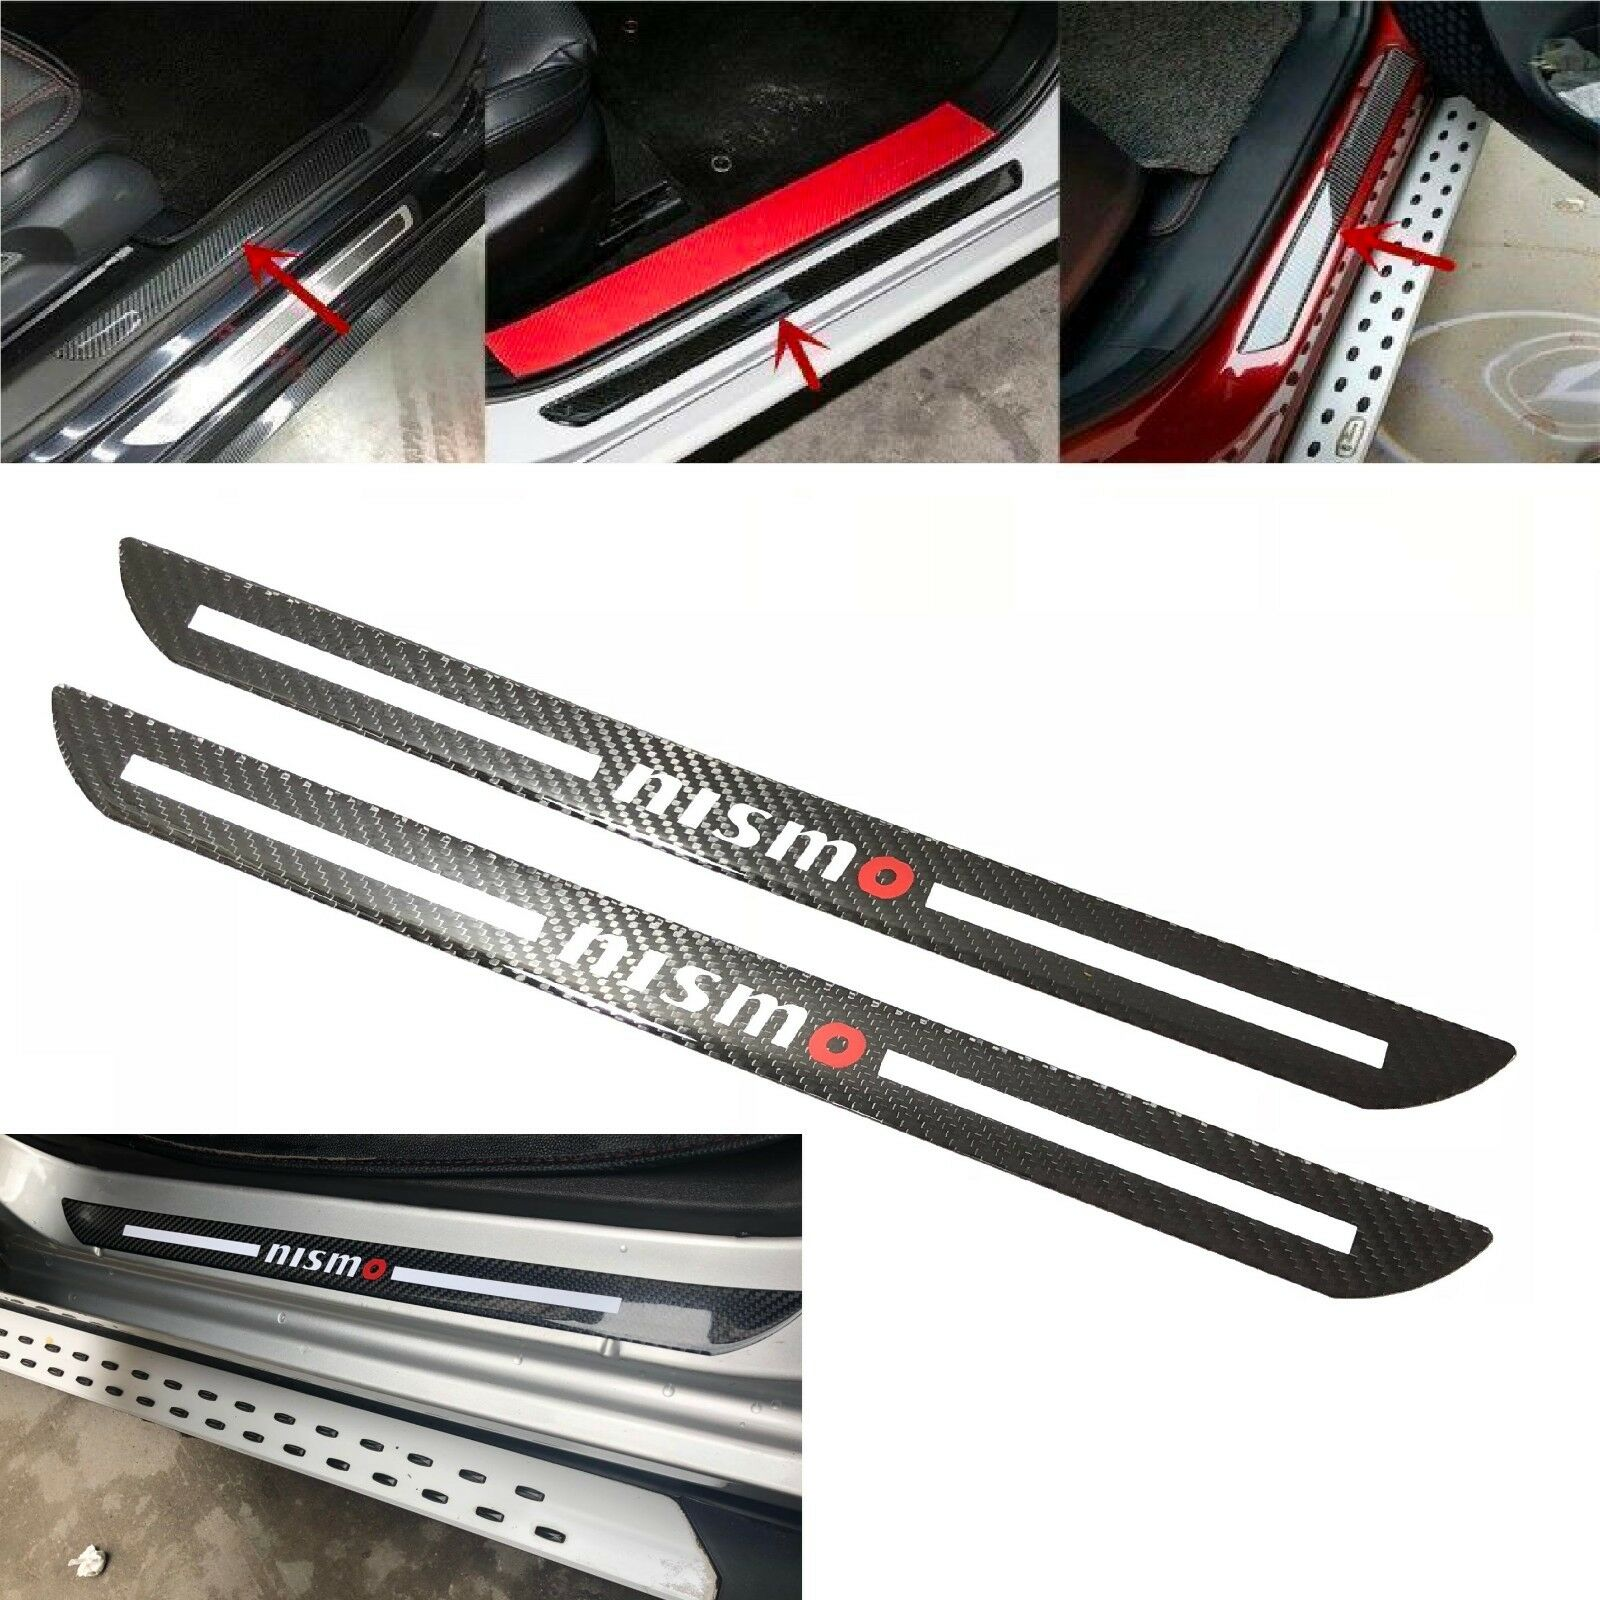 Car Parts - 2Pcs NISMO Carbon Car Door Scuff Sill Cover Plates Panel Step Protector Sticker